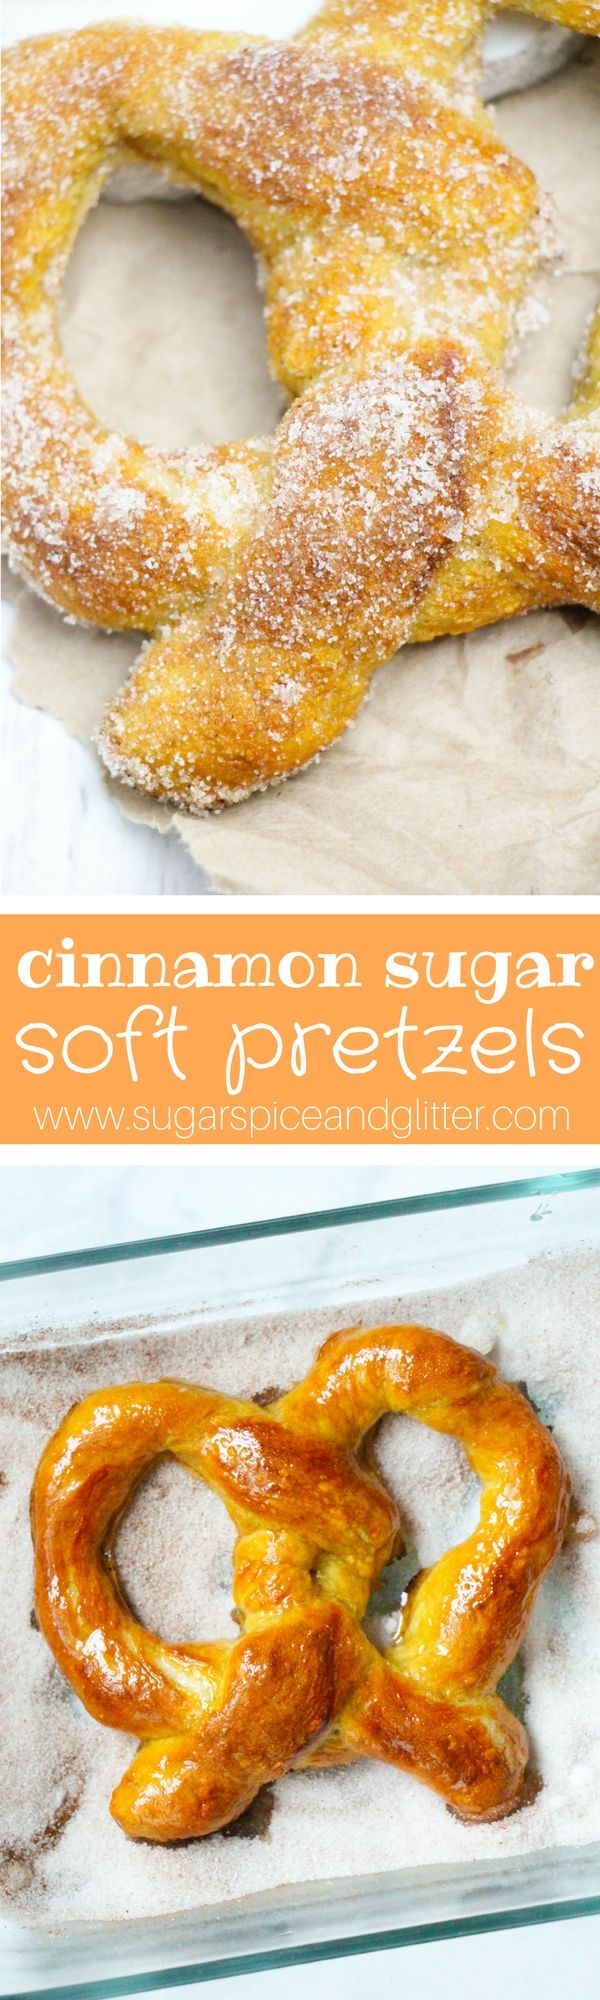 Every time I have to go to the mall, I struggle with temptation – if I go in one side of the mall, I am greeted with the beckoning smell of Cinnabon Cinnamon Rolls – and if I go in the other side – Delicious Cinnamon Sugar Soft Pretzels! Now that I have perfect recipes …